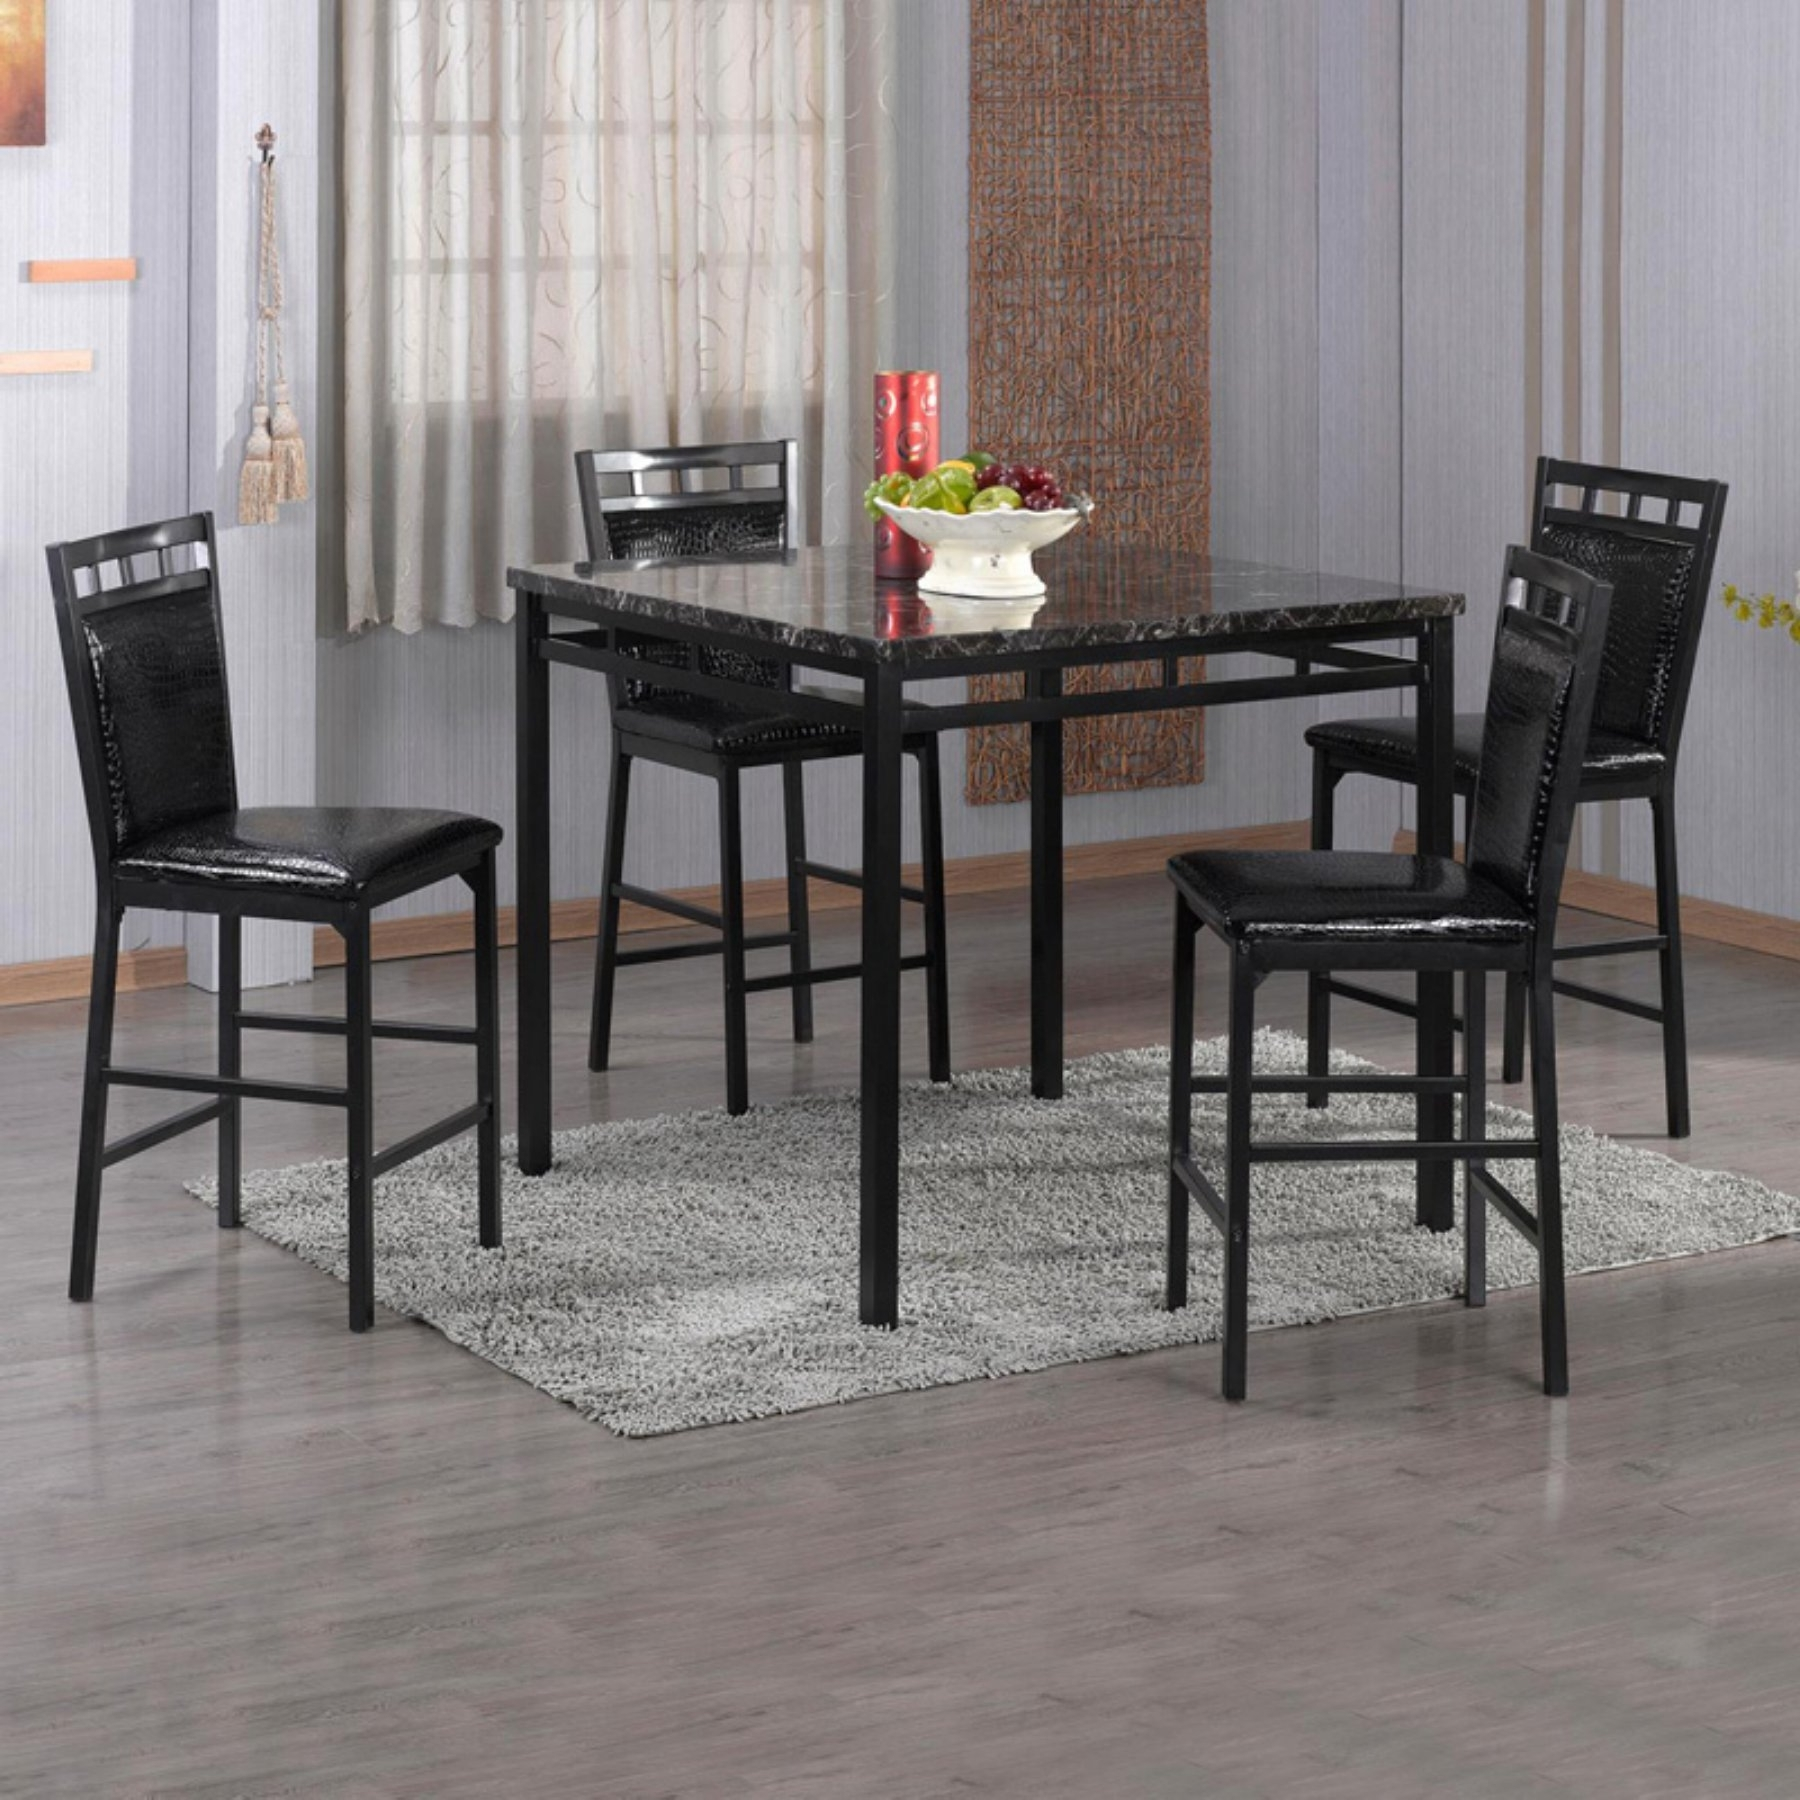 2018 Market 7 Piece Counter Sets For Home Source Industries 5 Piece Counter Height Dining Table Set In (View 3 of 25)